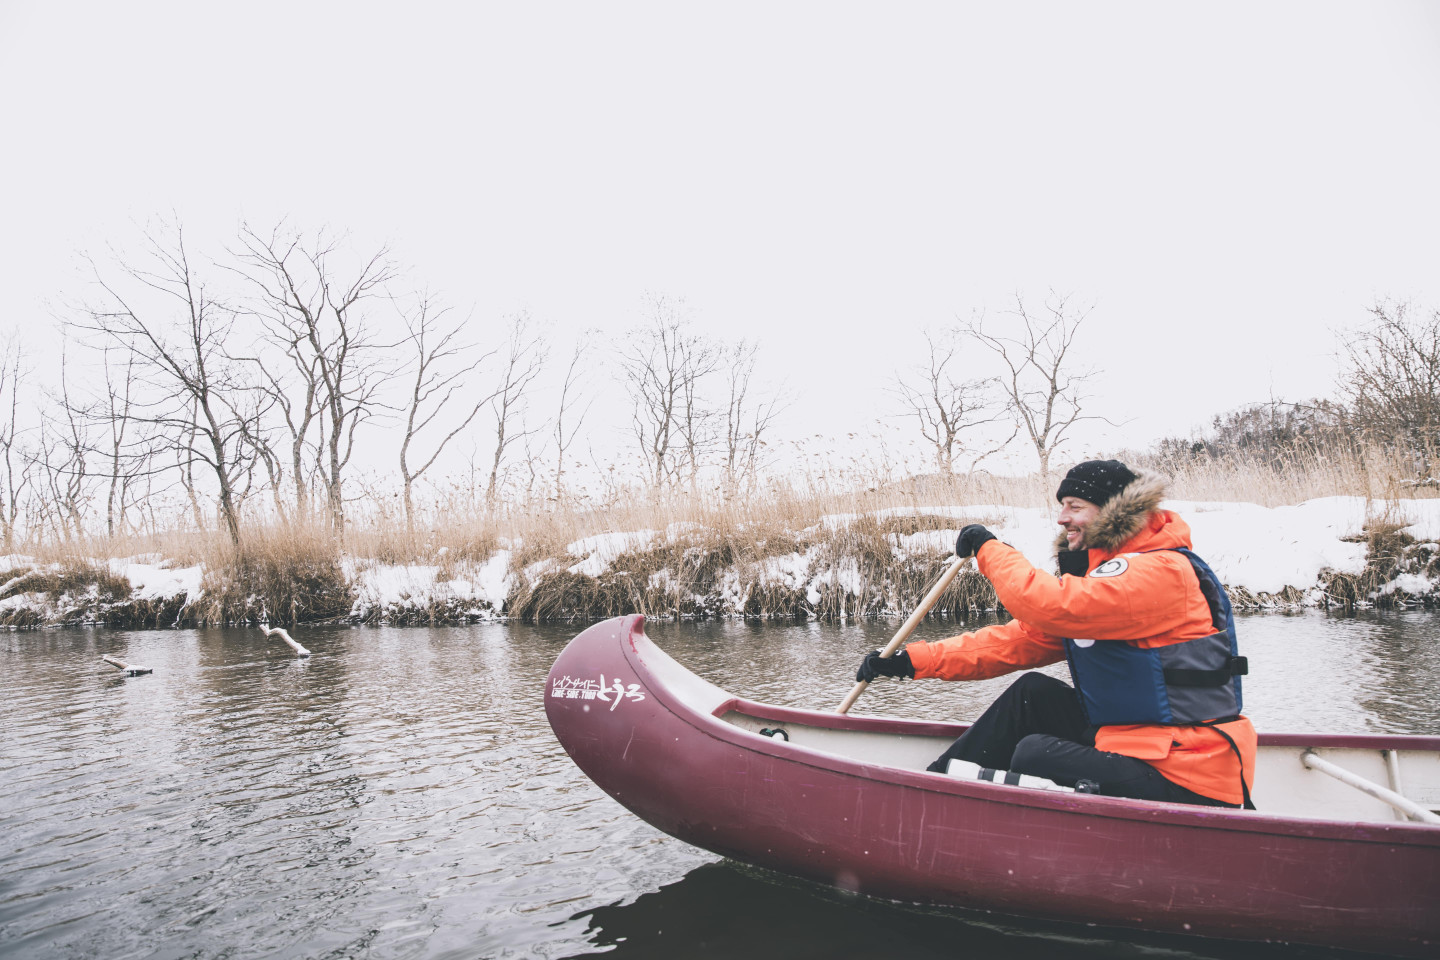 2.Gliding through Kushiro Wetland in winter in a Canadian canoe